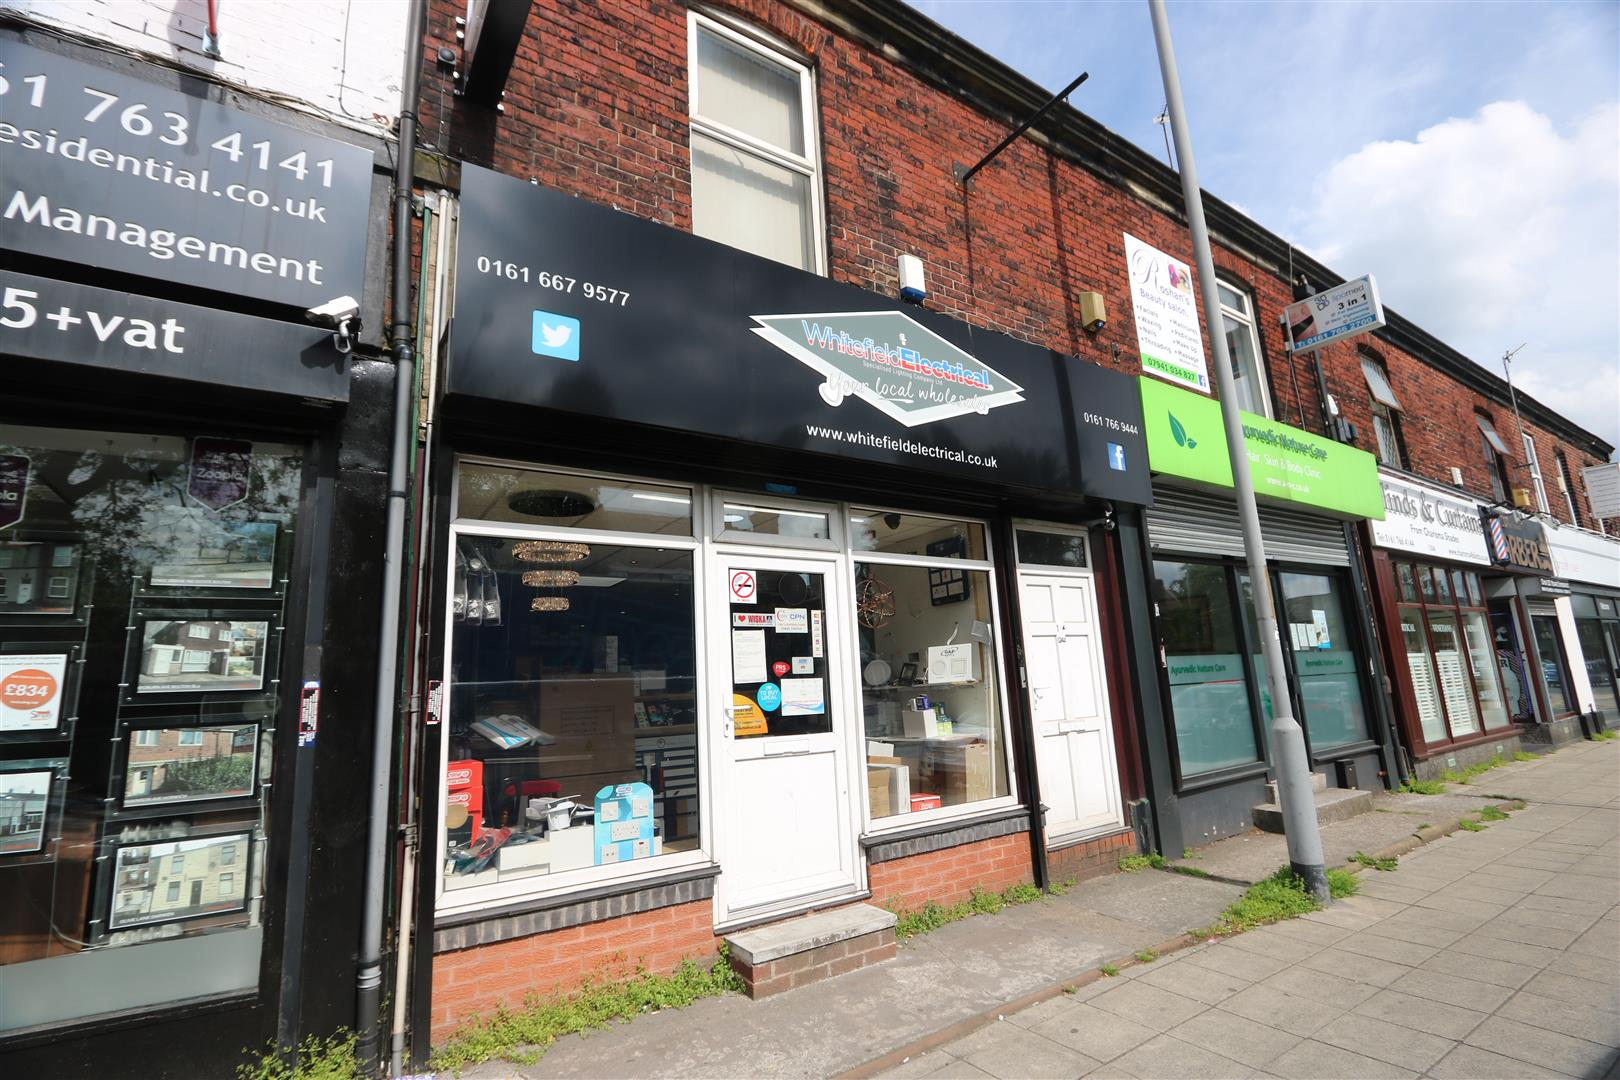 124 Bury New Road, Whitefield